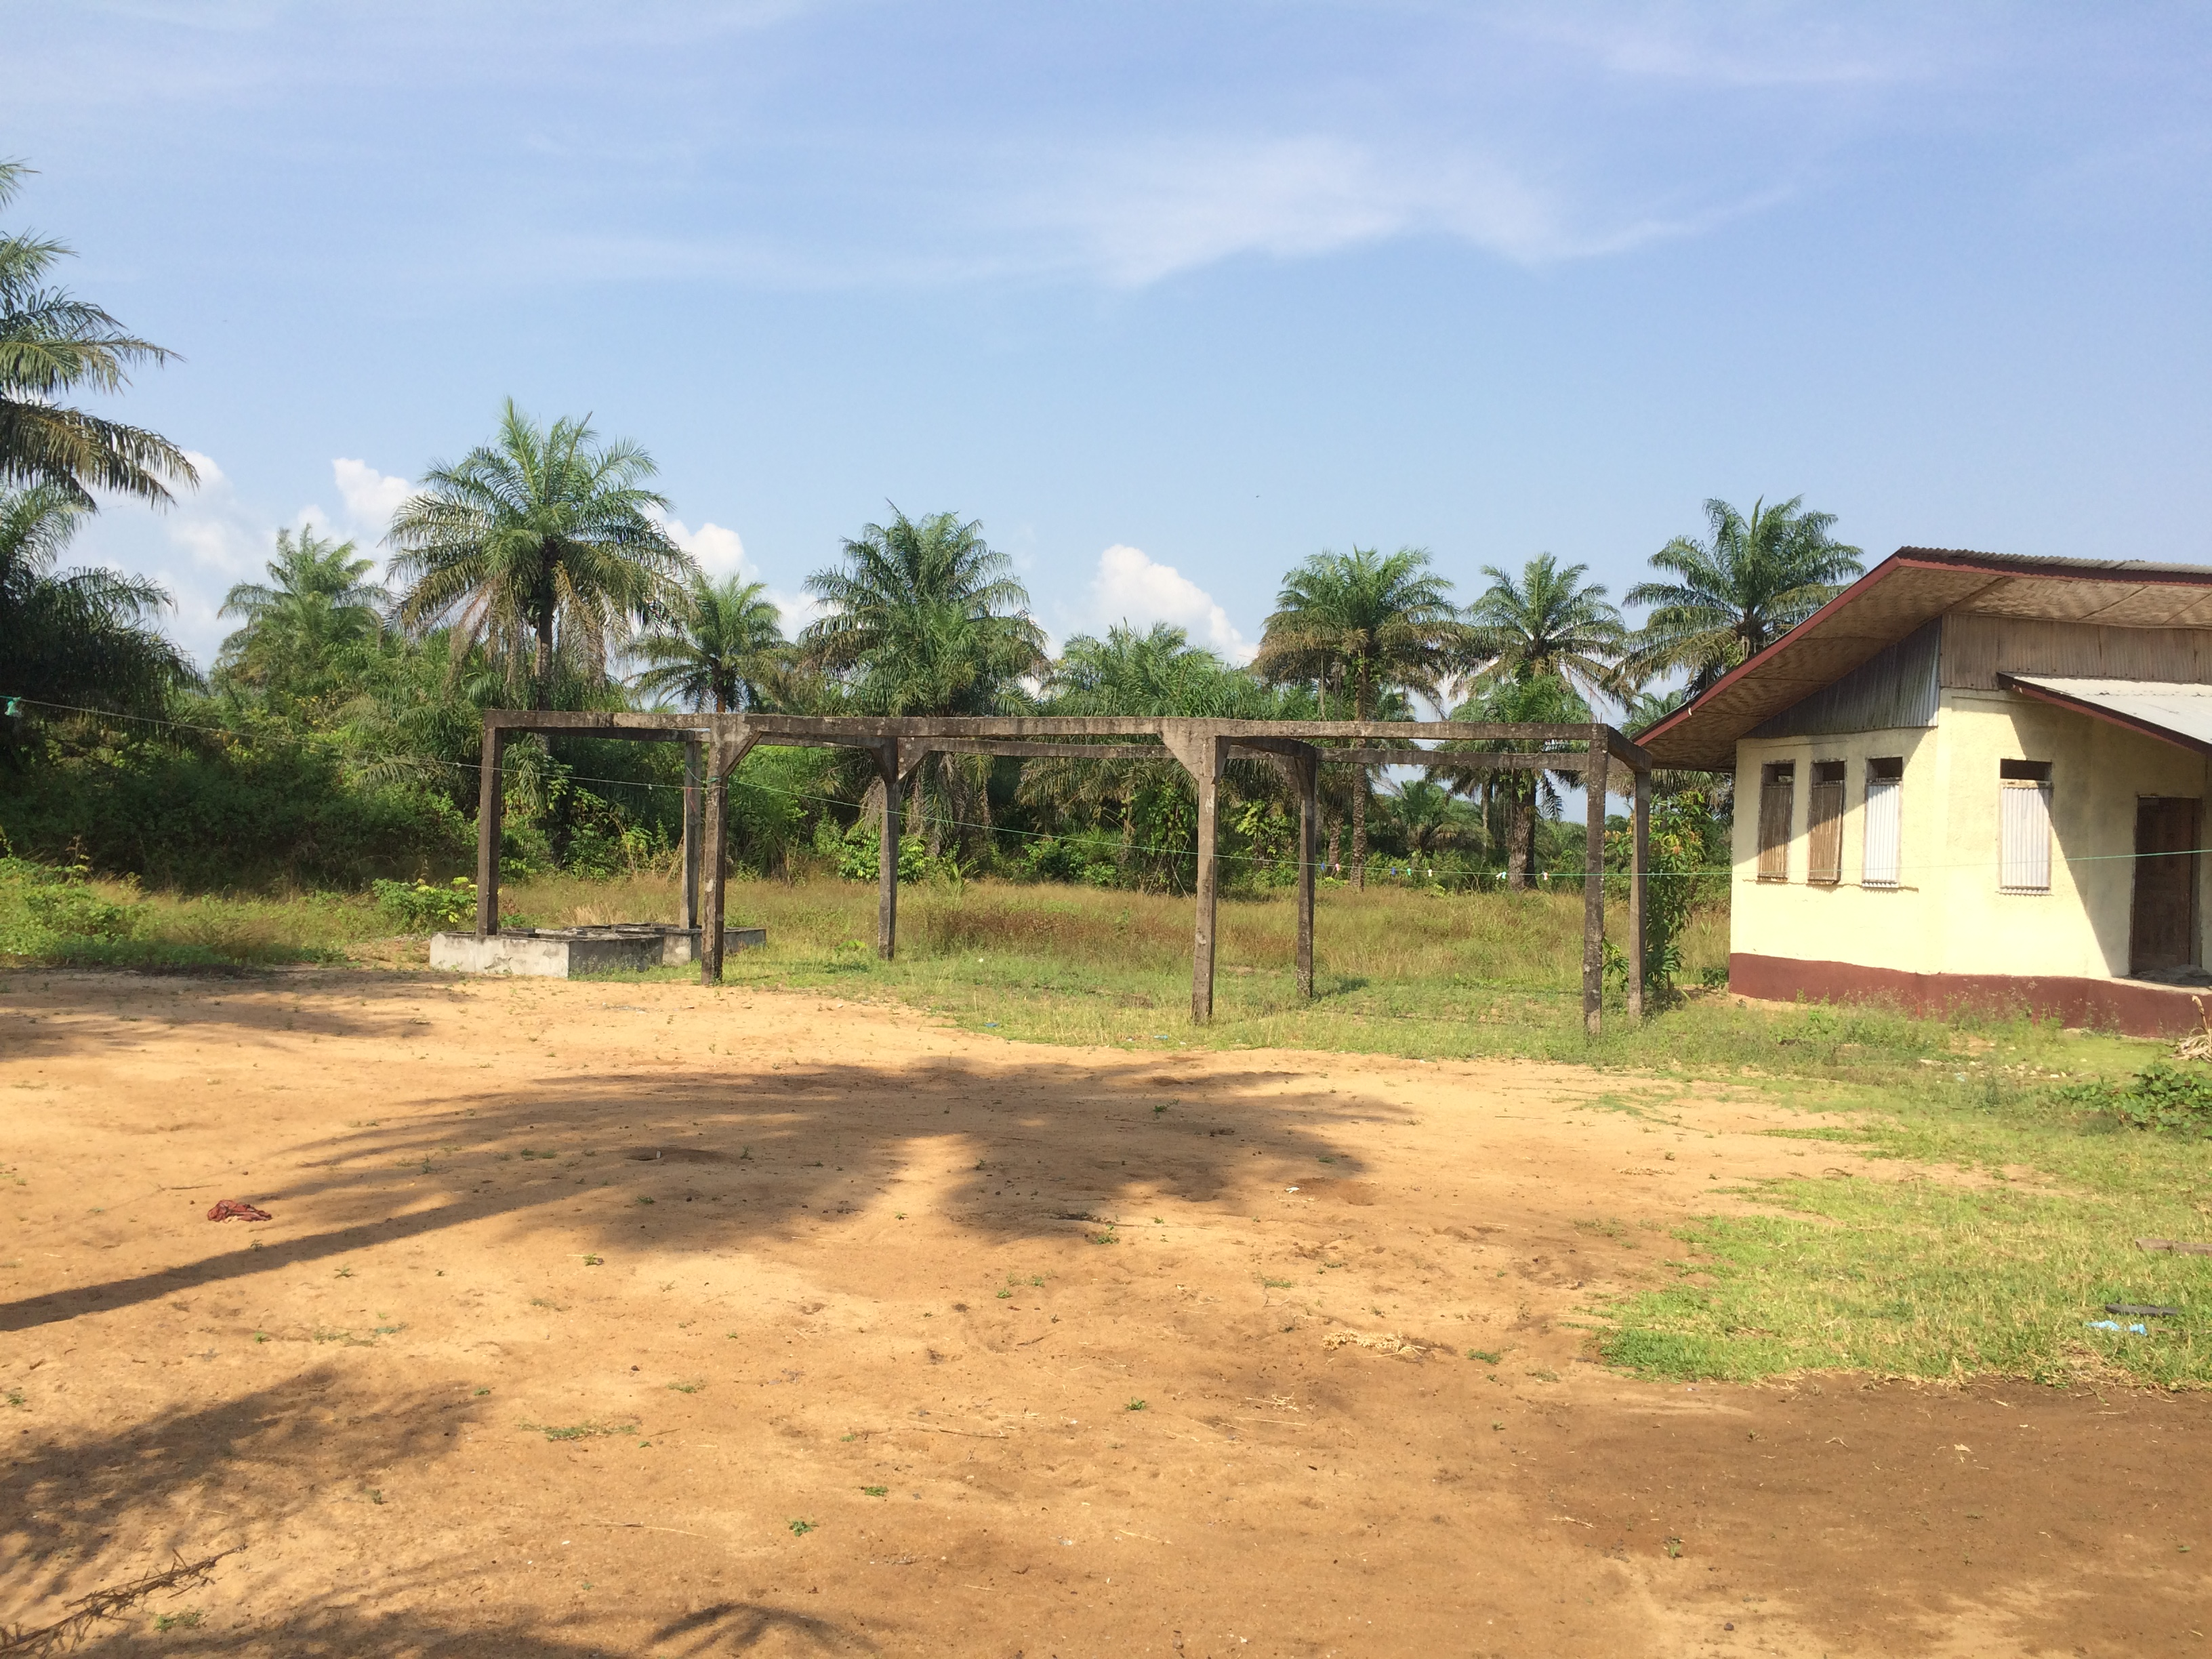 Property For Sale In Monrovia Liberia